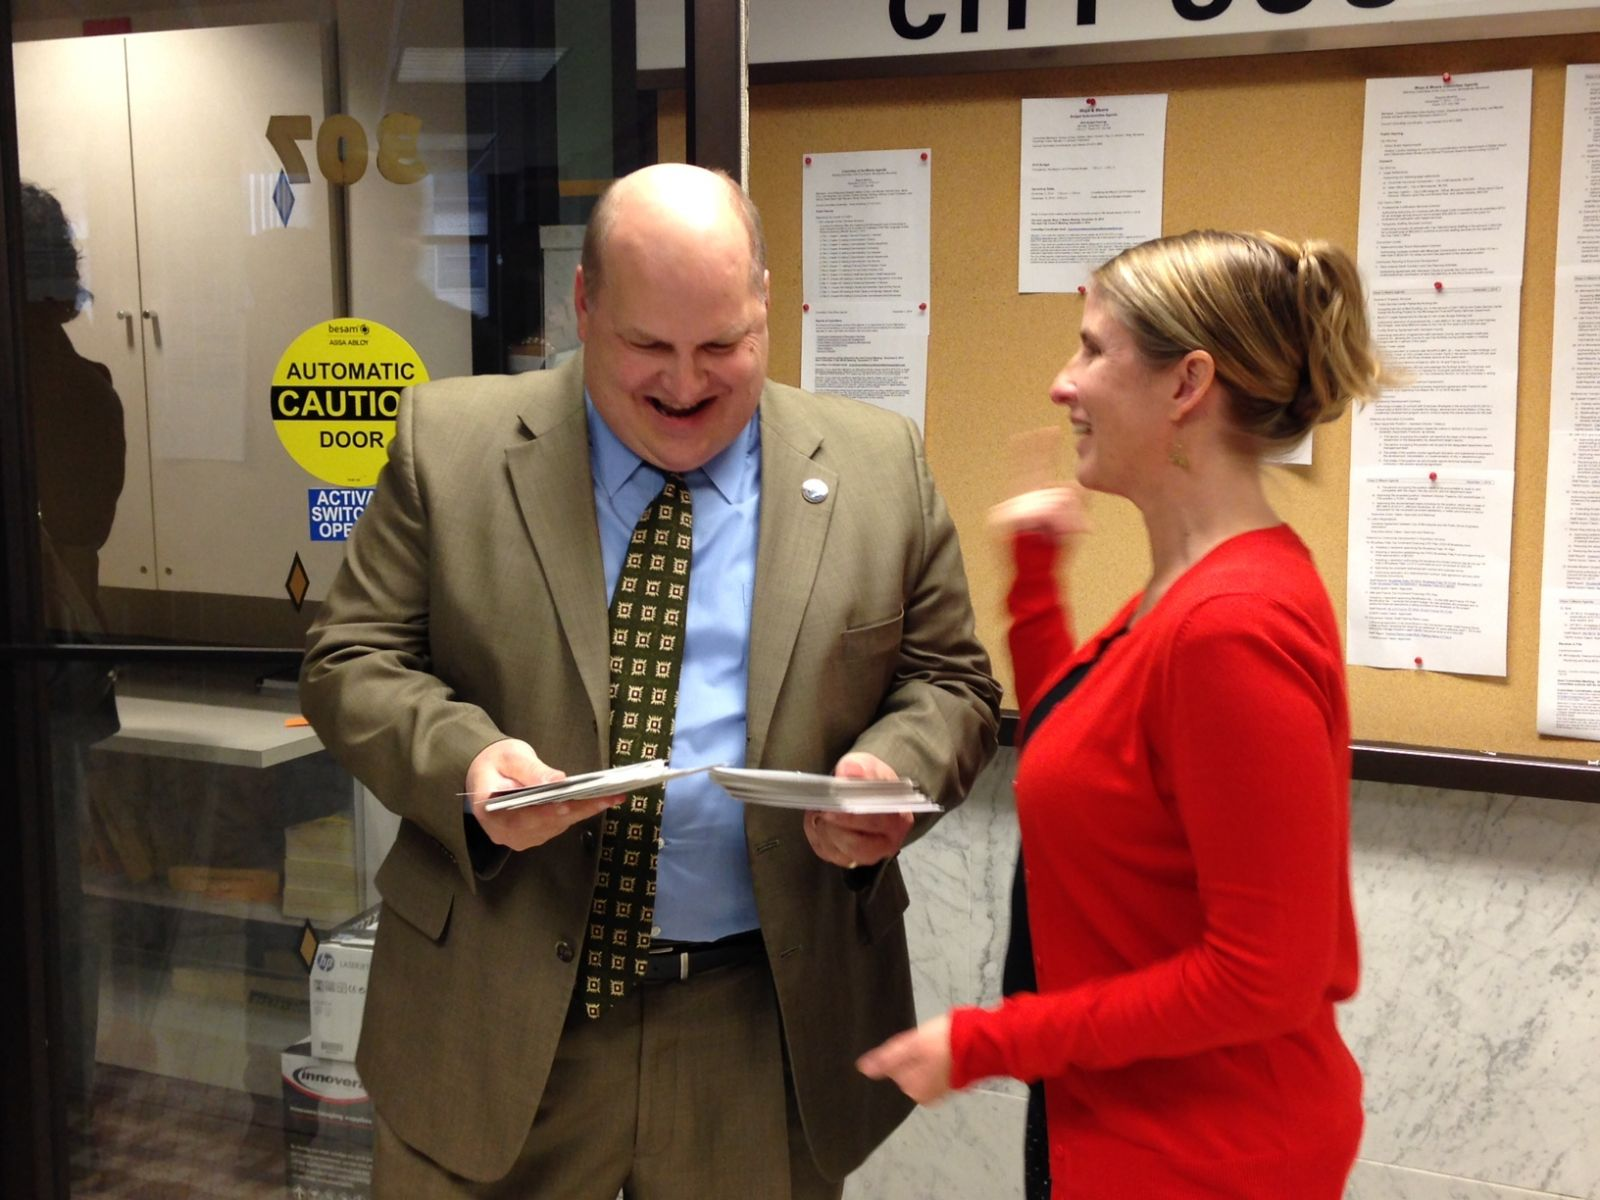 12-2-14_Postcard_Delivery_Event-_CM_John_Quincy_with_Amy_Brugh.JPG